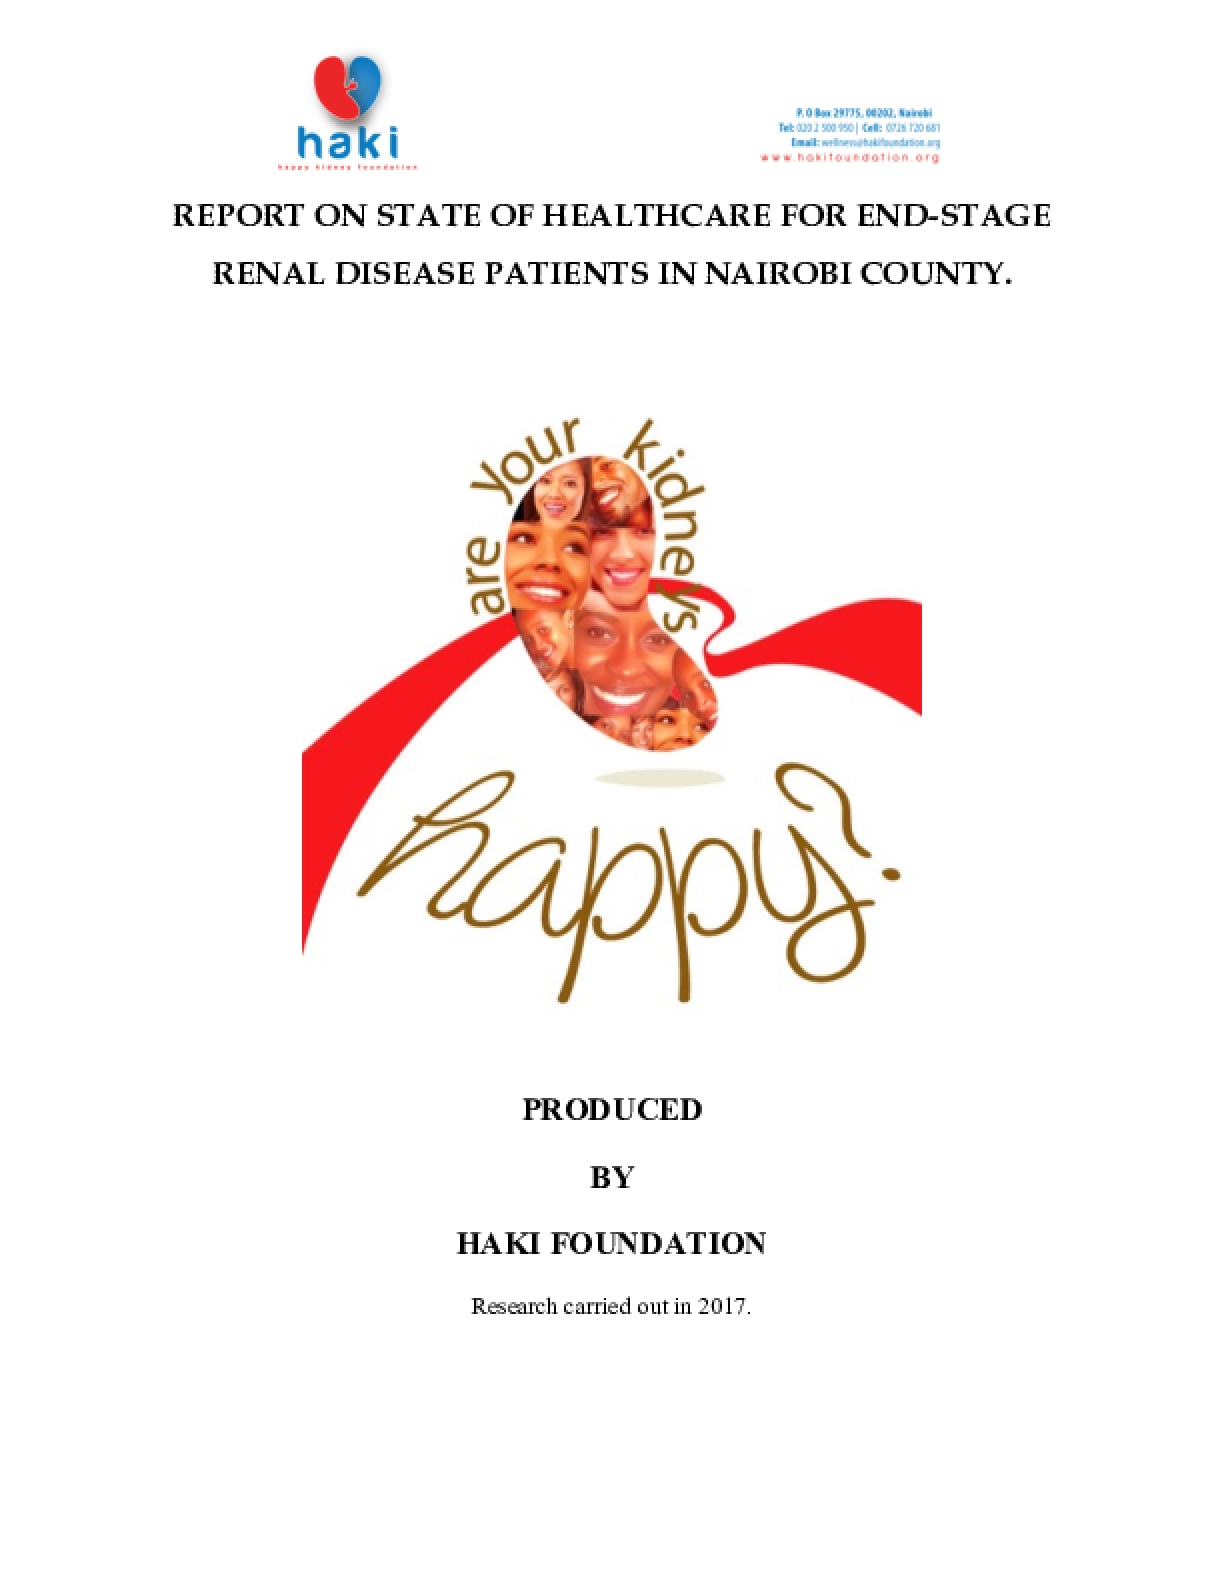 Report on State of Healthcare for End-Stage Renal Disease Patients in Nairobi County